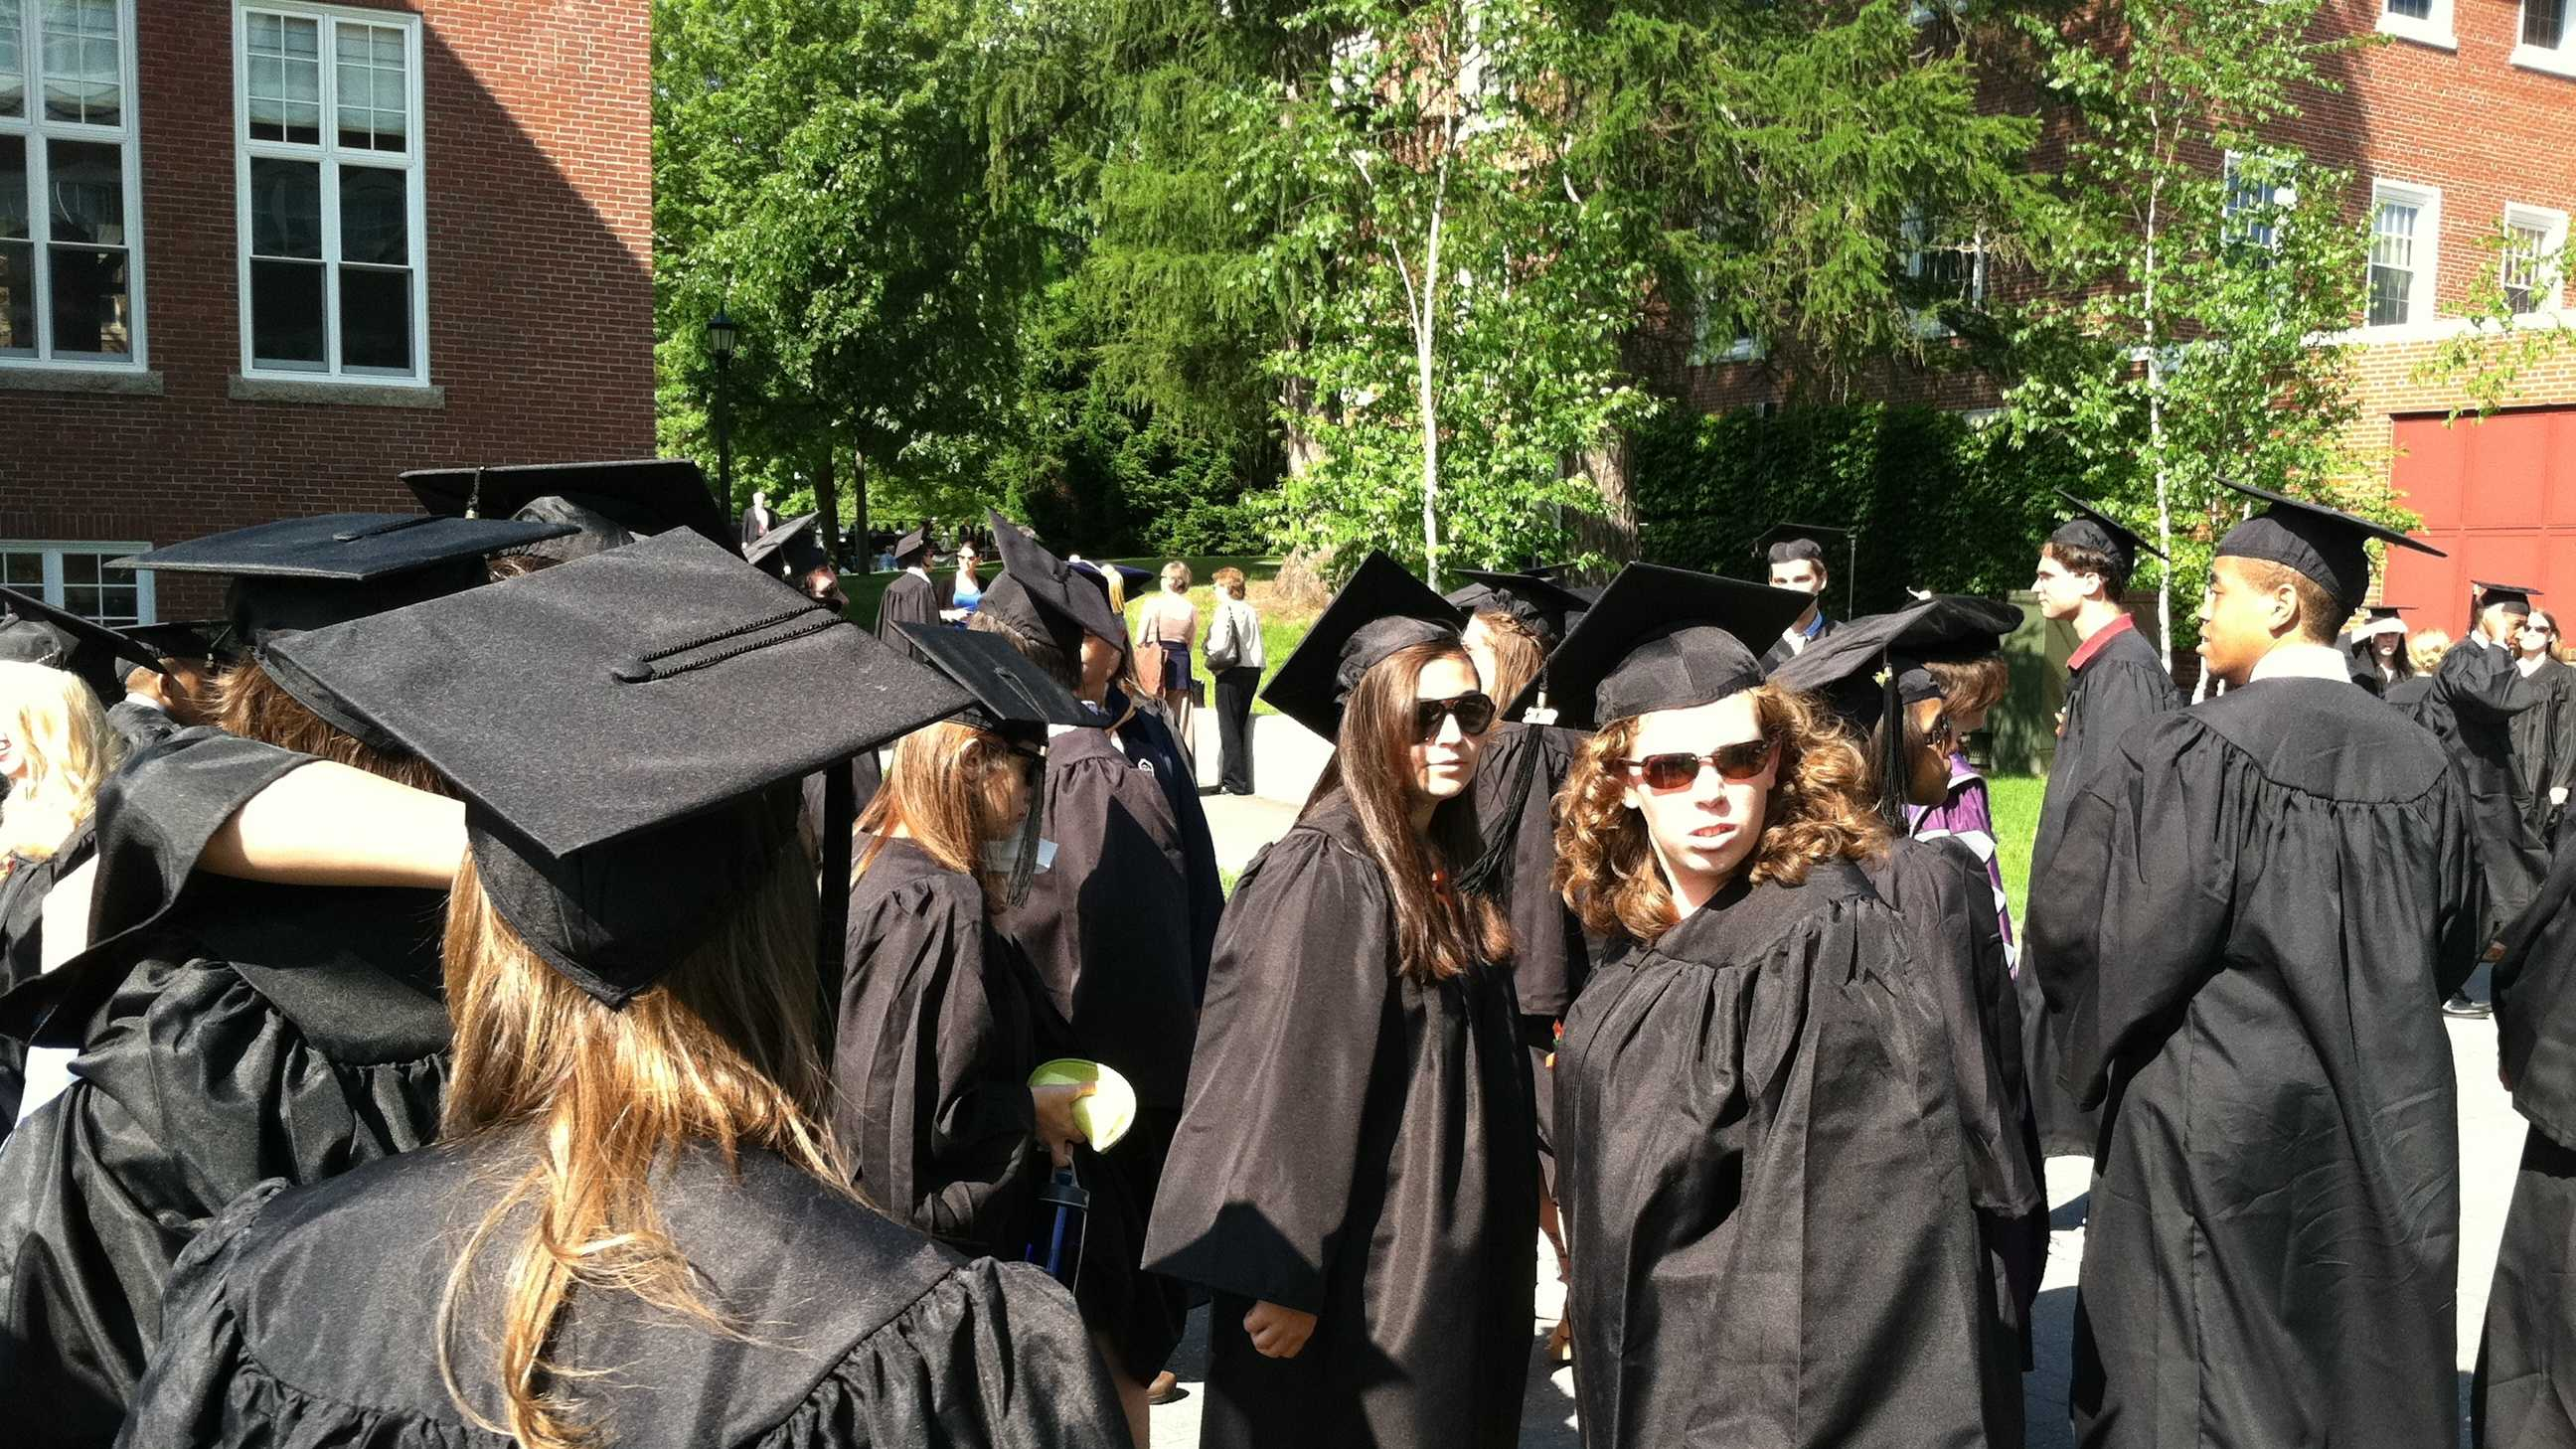 Bates College held its 146th commencement